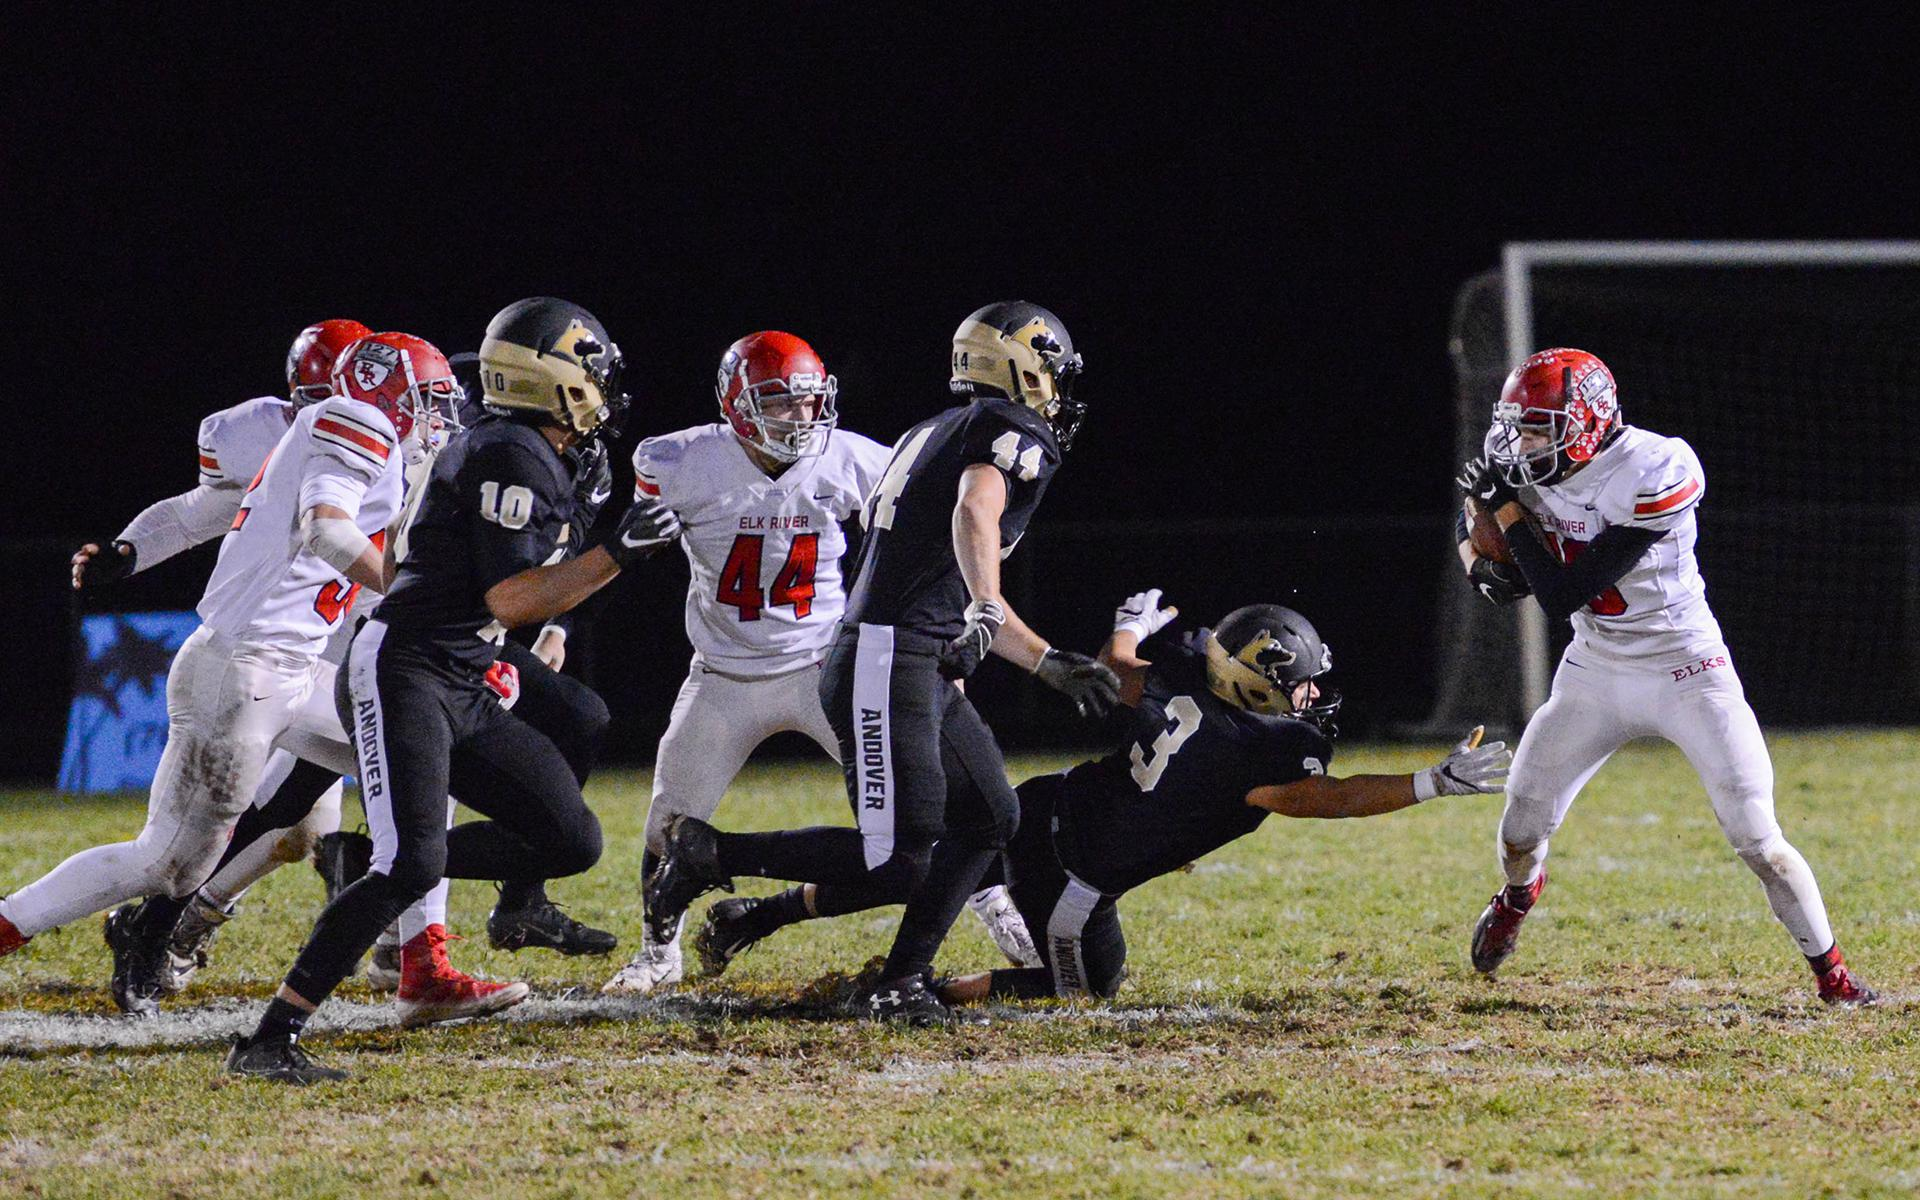 Elk River running back Logan Enkhaus dodges a tackle against Andover at Andover High School on Friday night. Photo by Carter Jones, SportsEngine